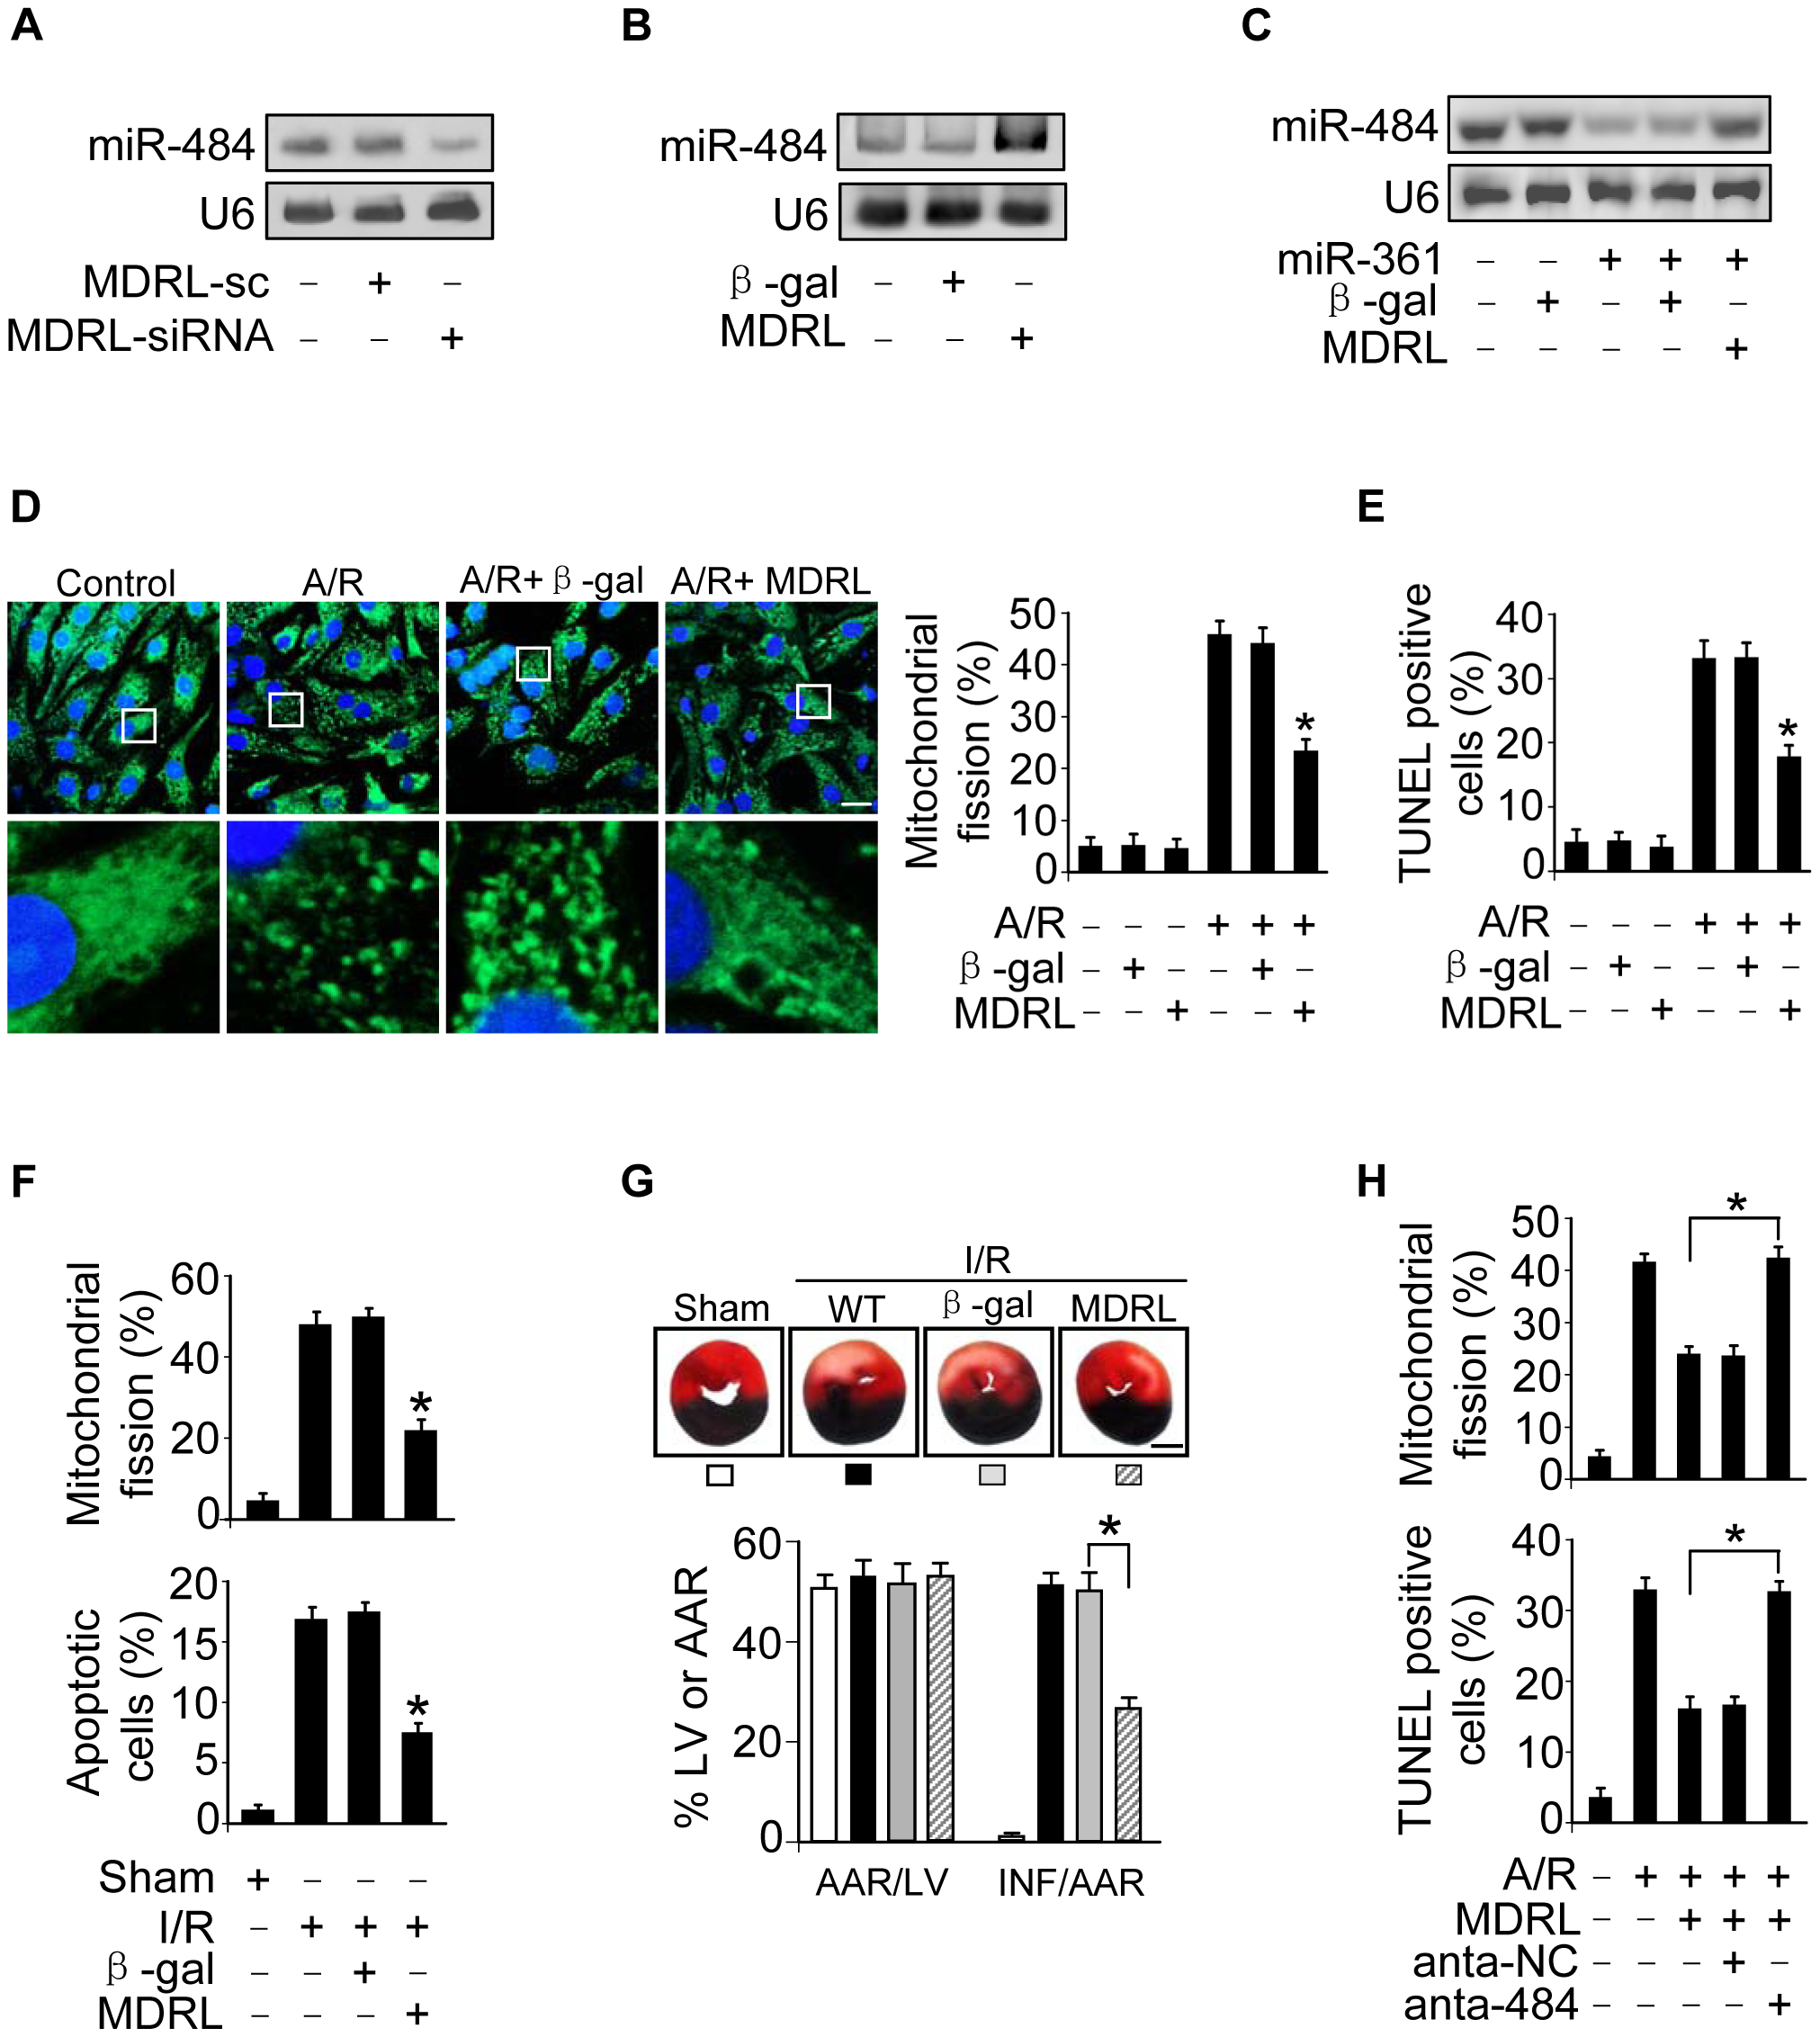 MDRL regulates mitochondrial fission and apoptosis through targeting miR-361 and miR-484.